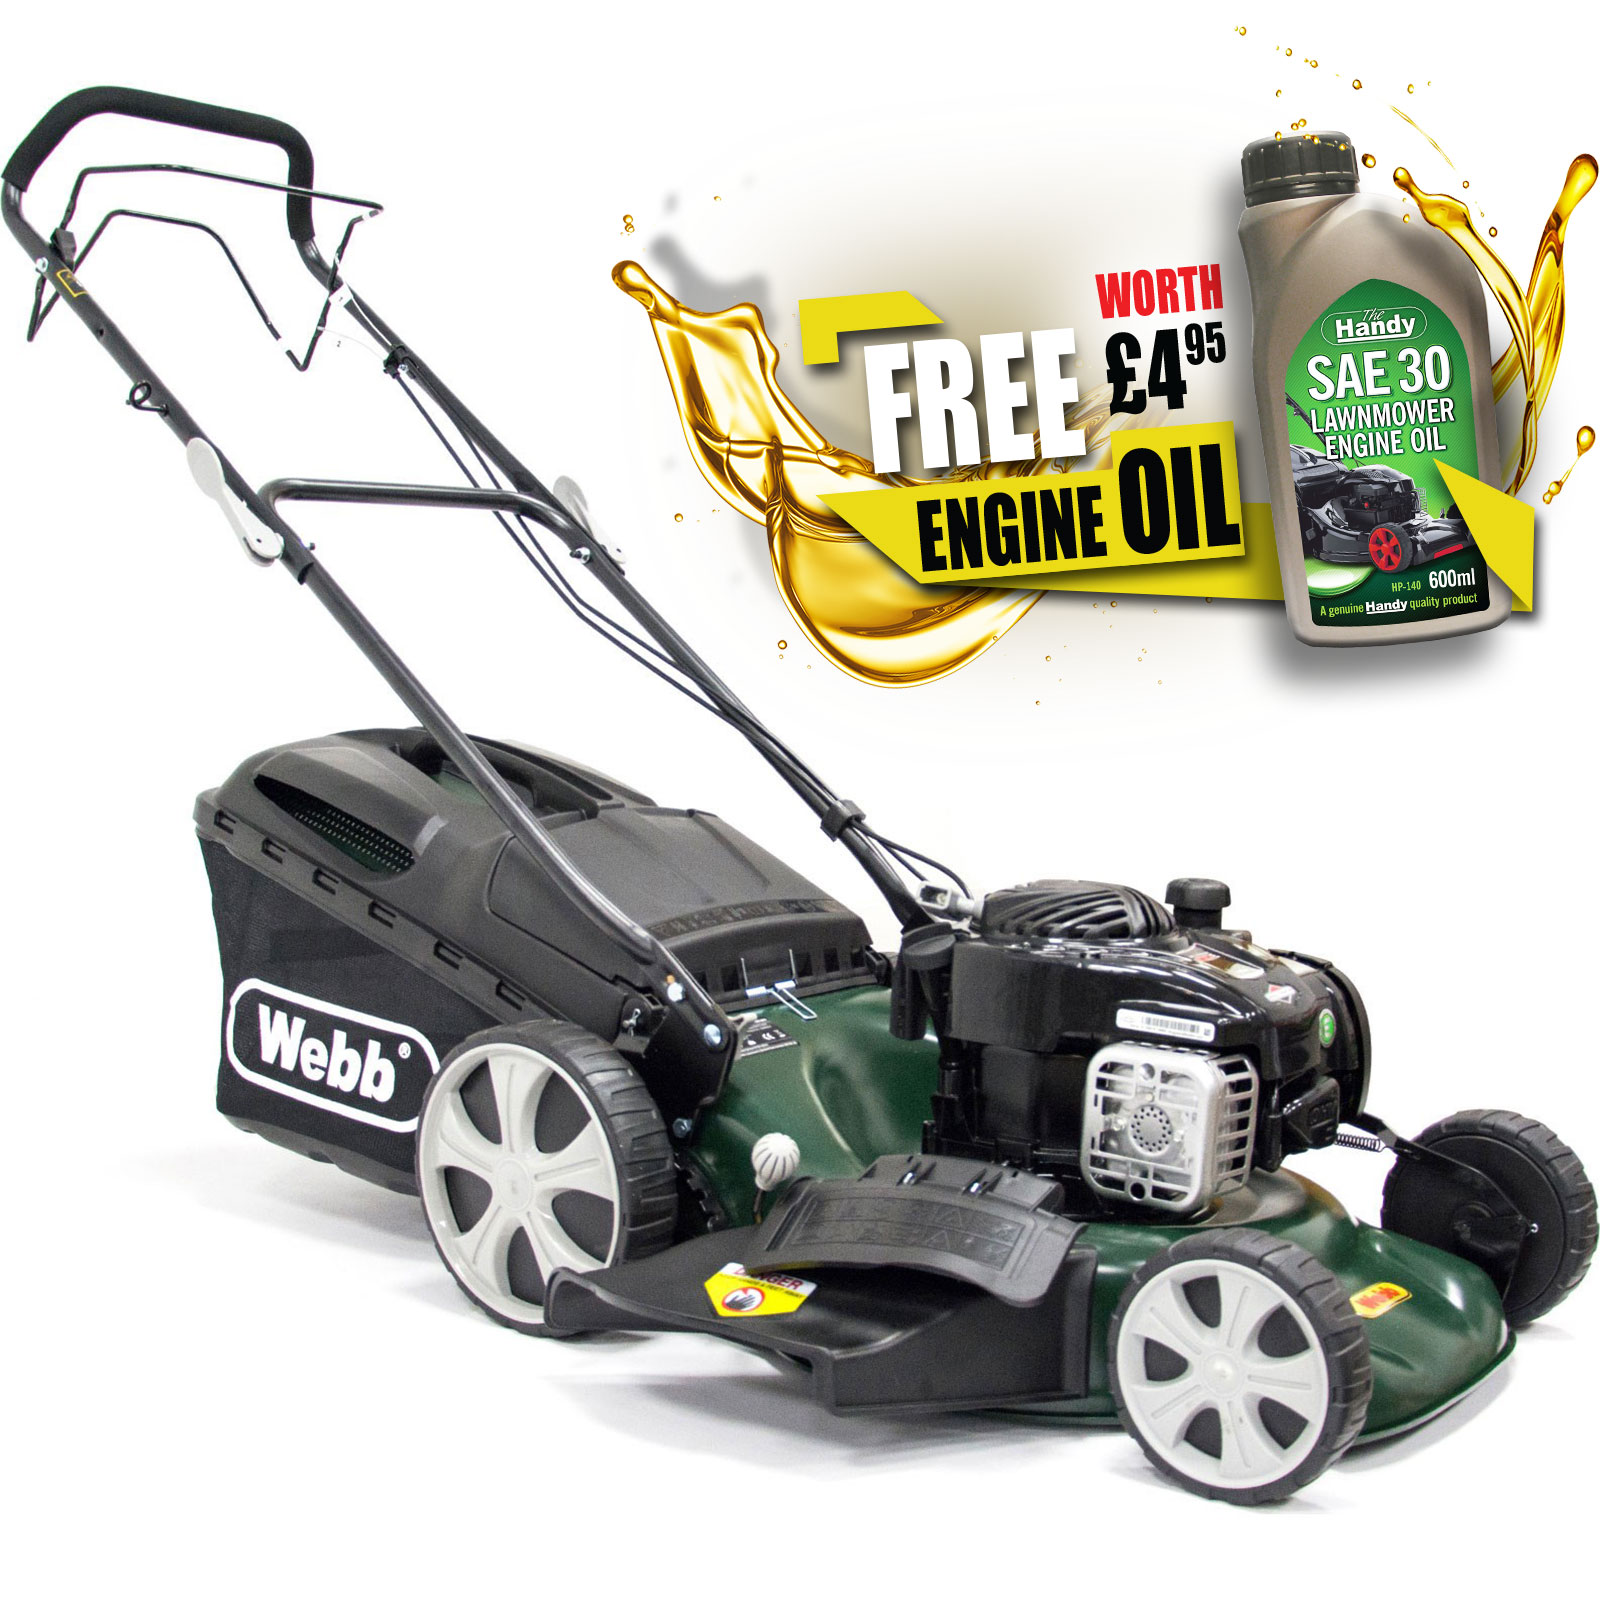 Image of Webb WER18HW Self Propelled Petrol 3 in 1 Rotary Lawnmower 460mm FREE Engine Oil Worth £4.95